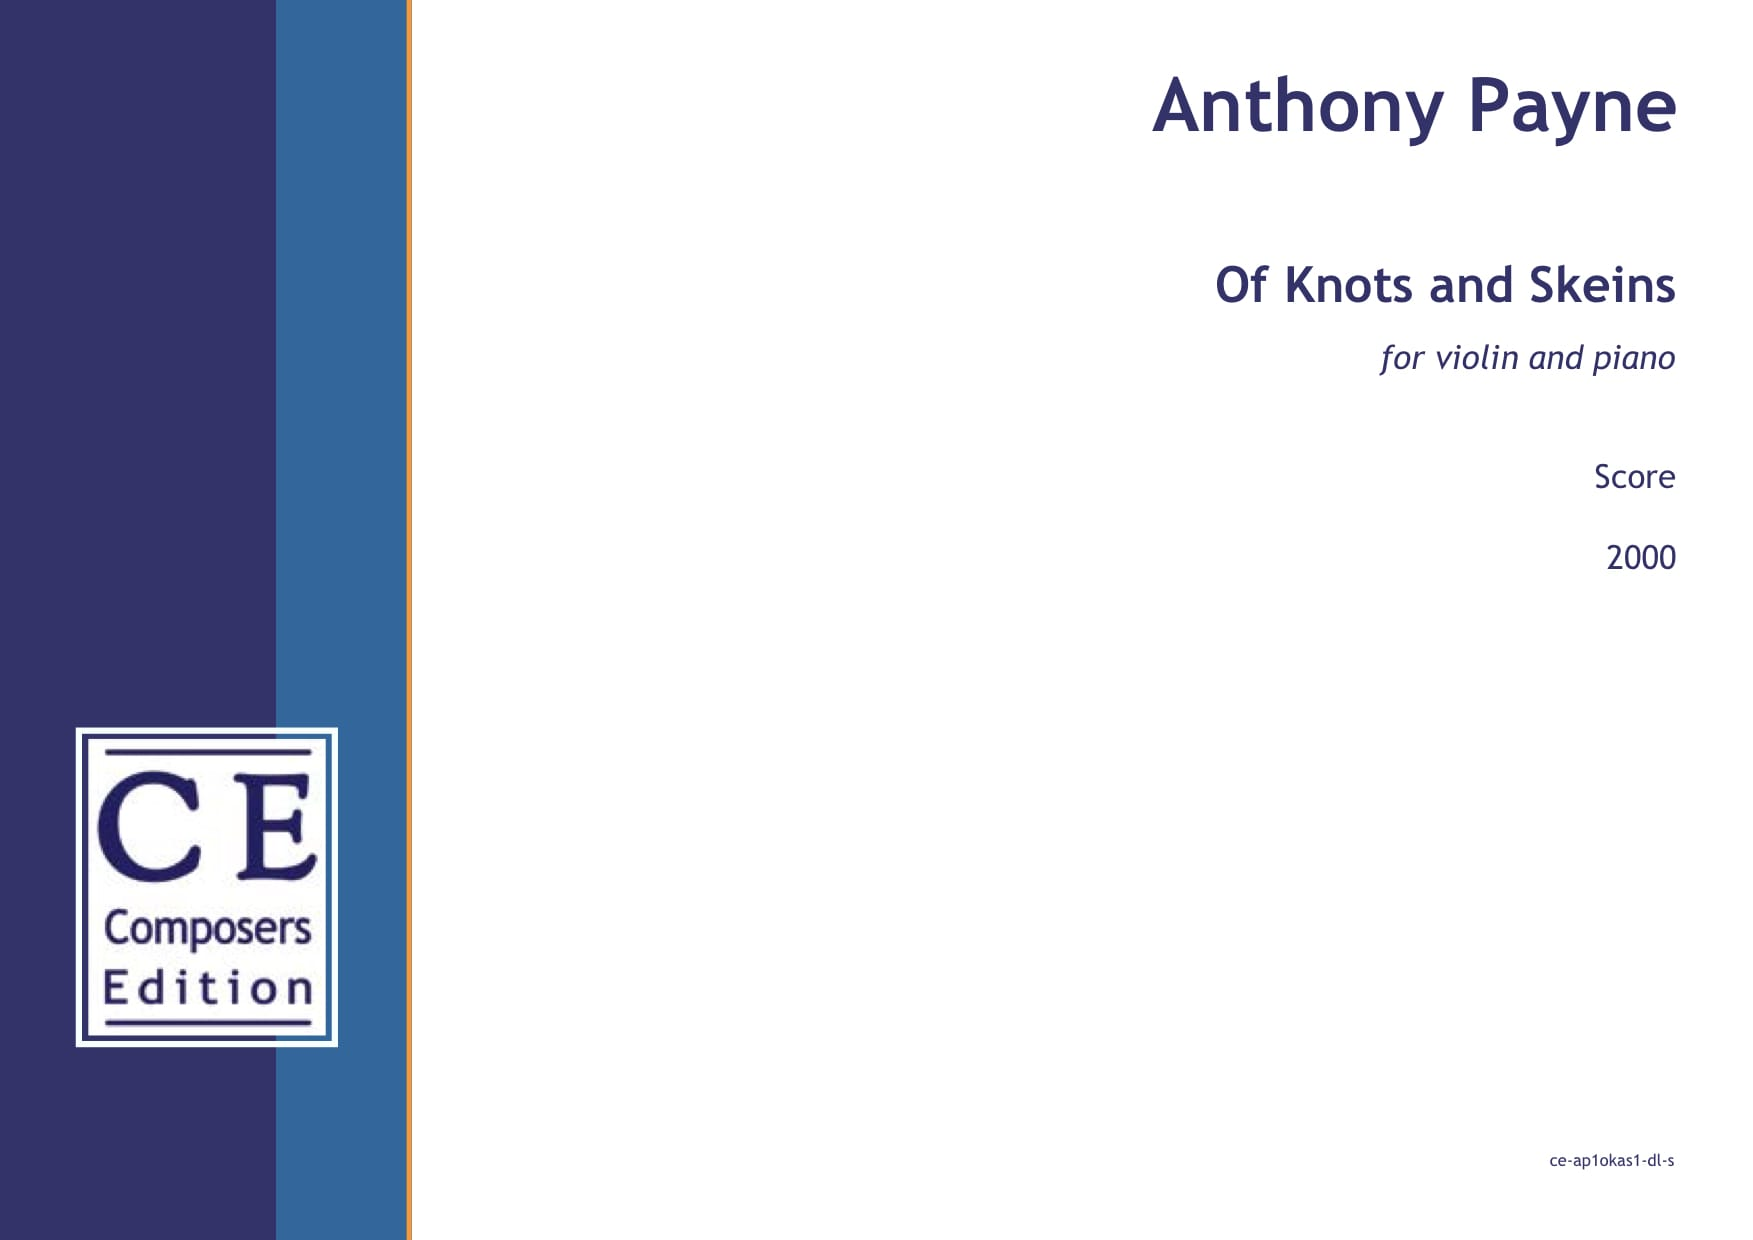 Anthony Payne: Of Knots and Skeins for violin and piano